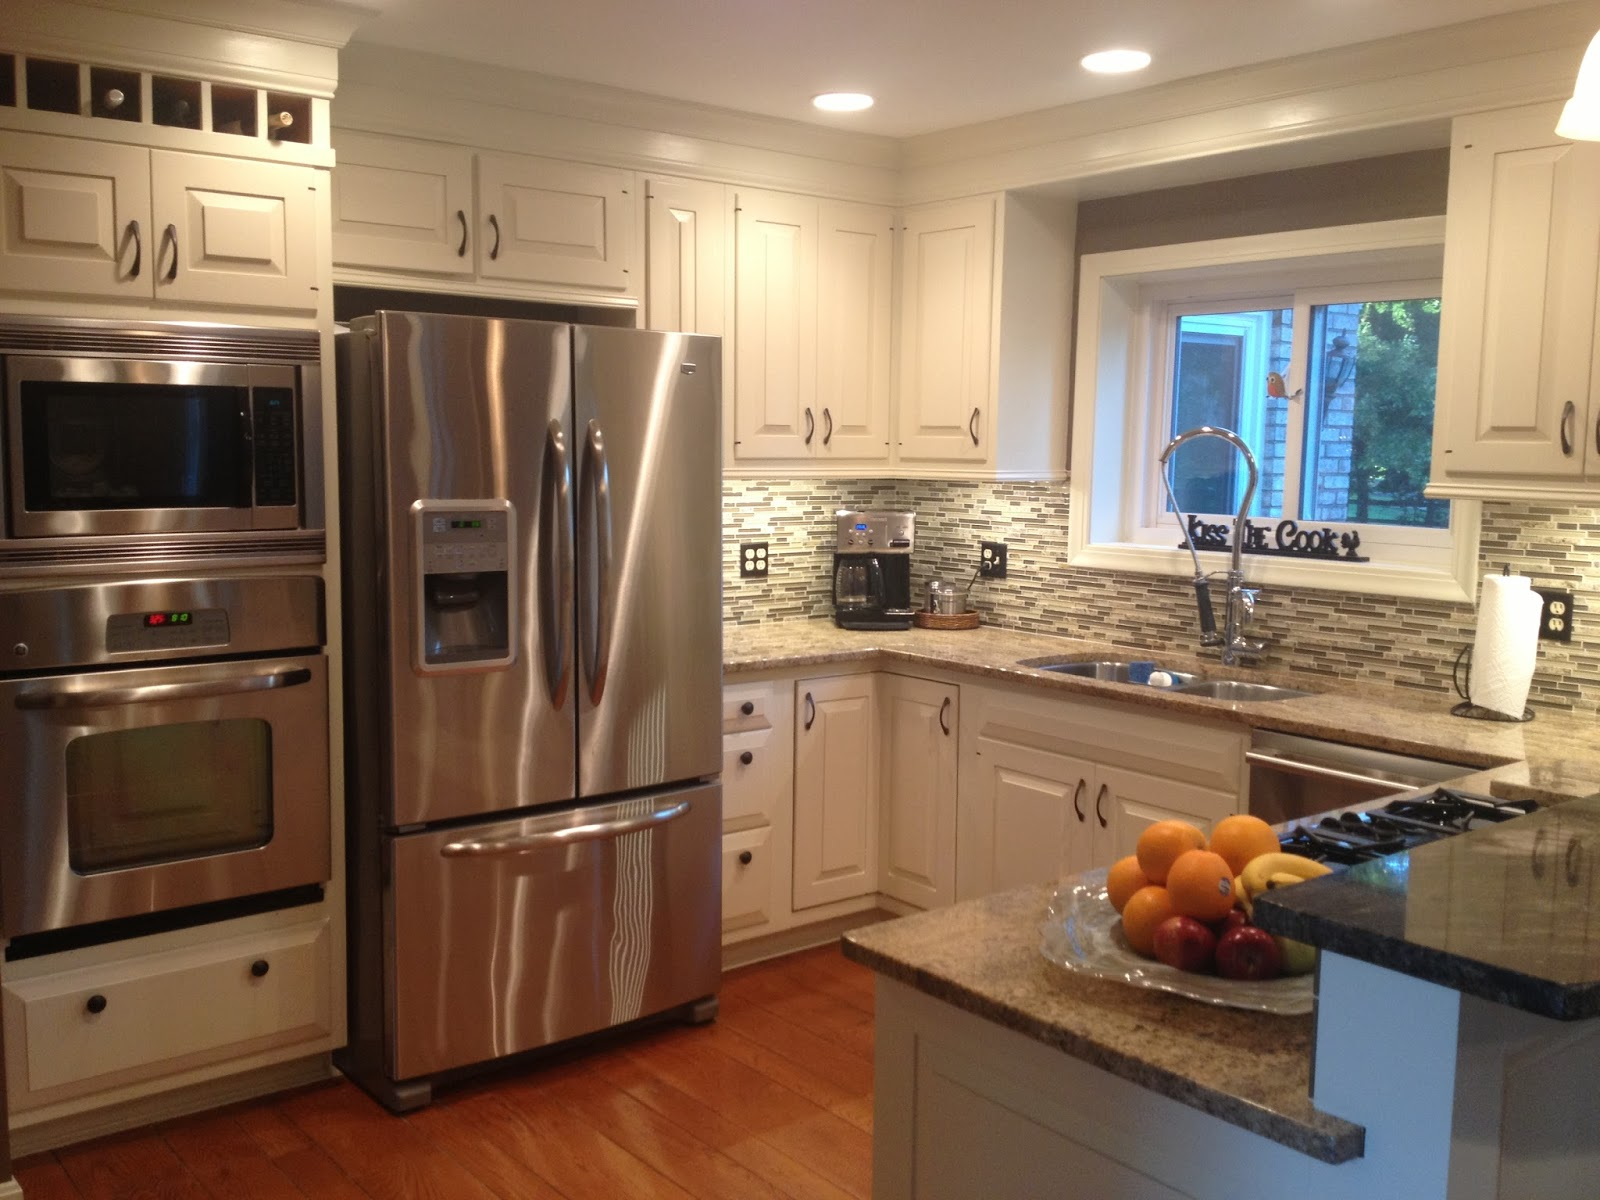 Four seasons style the new kitchen remodel on a budget for Remodeling kitchen cabinets ideas